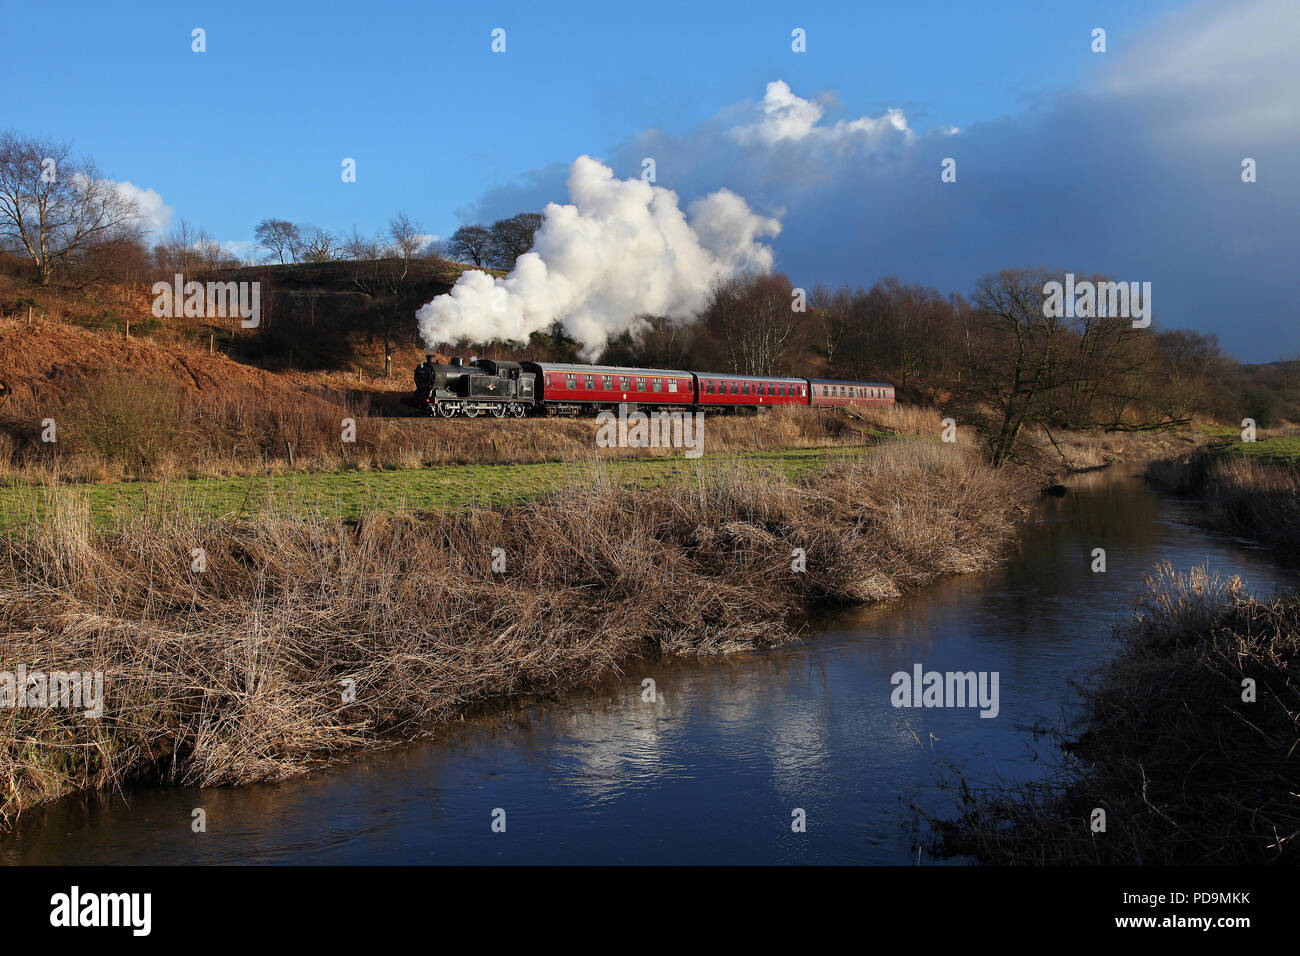 69621 approaches Cheddleton on the Churnet Valley Railway 21.2.15 - Stock Image